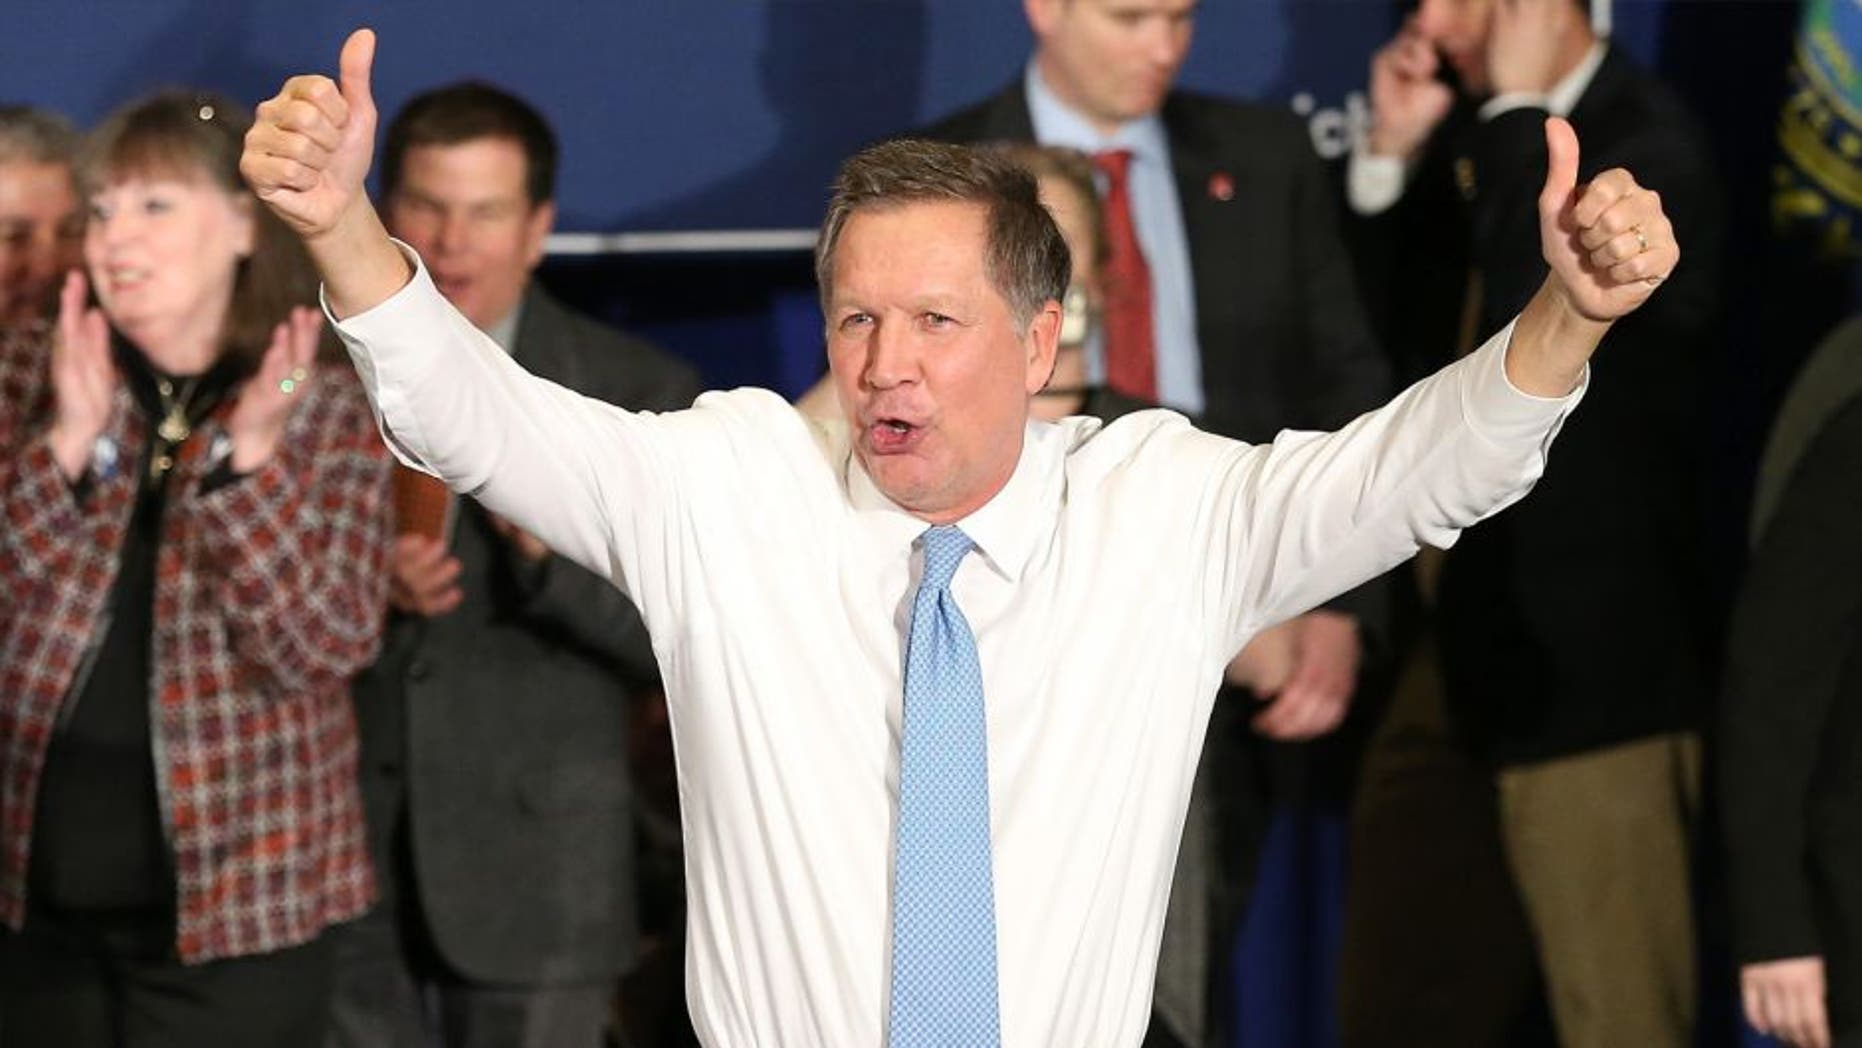 Republican presidential candidate Ohio Governor John Kasich waves to the crowd after speaking at a campaign gathering with supporters upon placing second place in the New Hampshire republican primary on February 9, 2016 in Concord, New Hampshire. Kasich lost the Republican primary to Donald Trump, though he upset fellow Republican governors Chris Christie and former Governor Jeb Bush. (Photo by Andrew Burton/Getty Images)